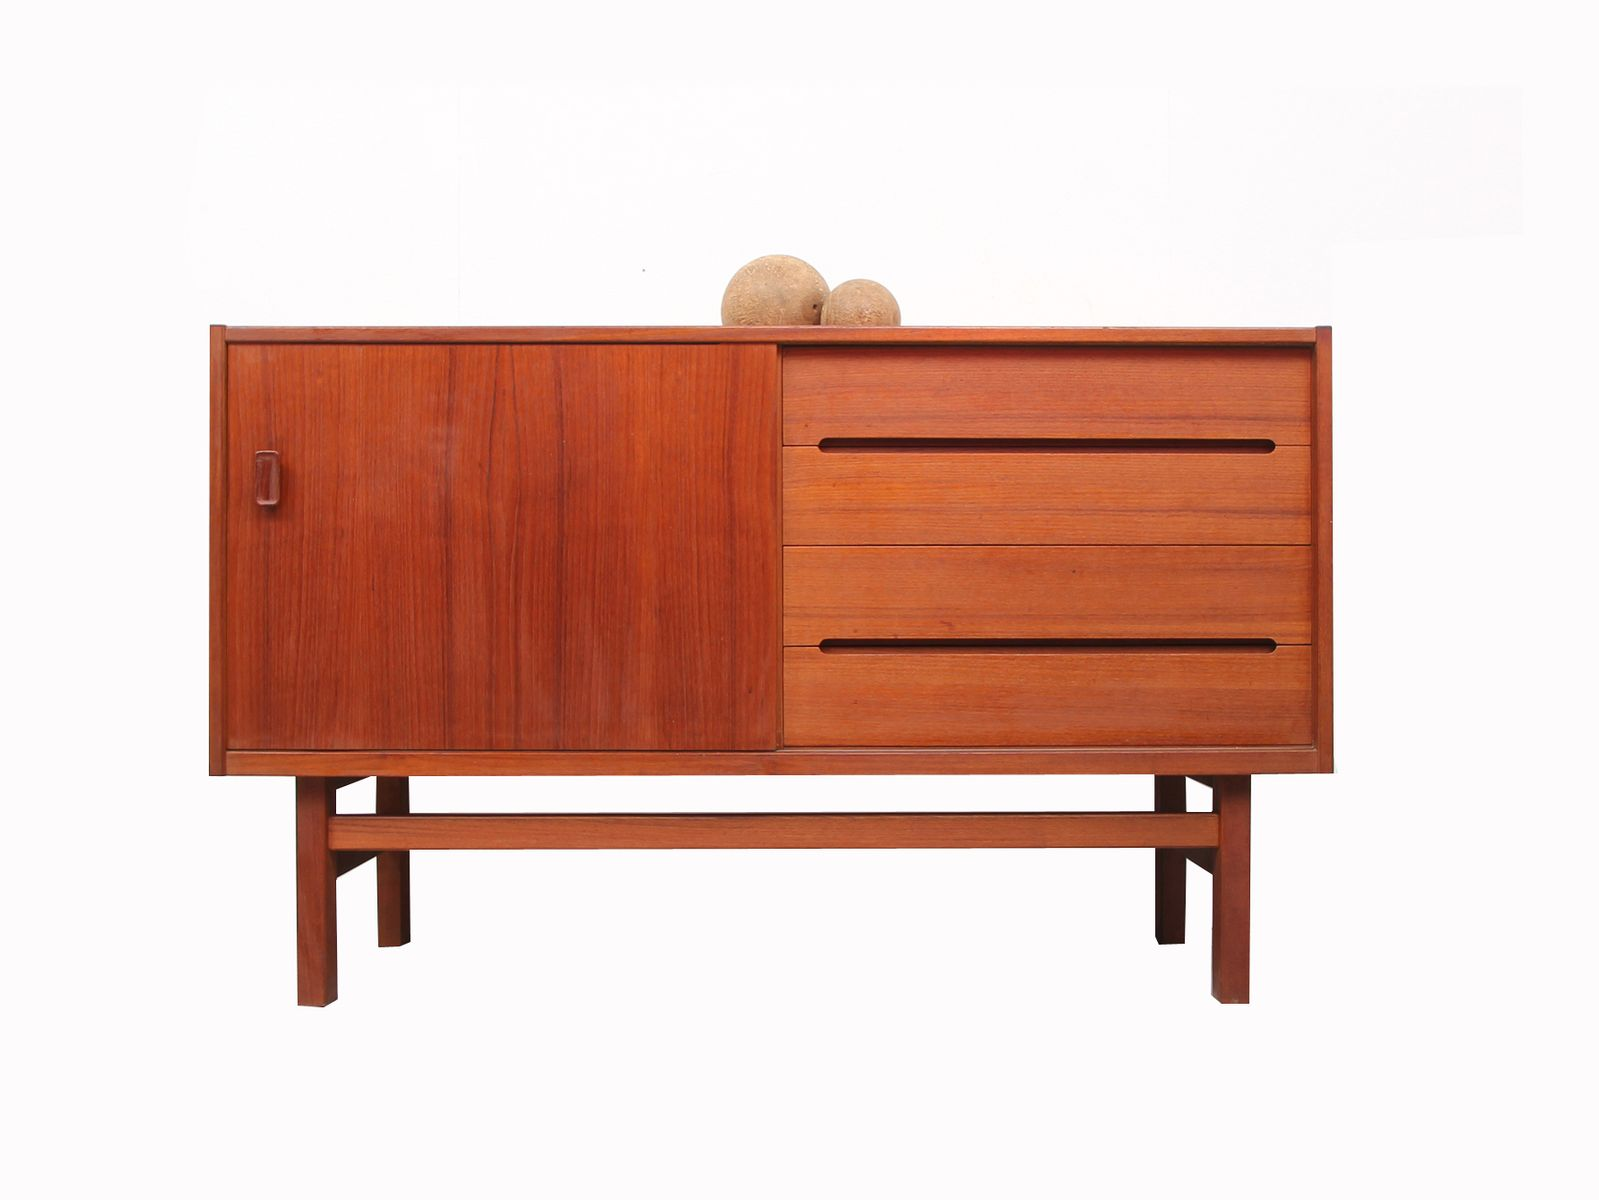 Mid century teak sideboard from troeds 1960s for sale at - Sideboard mid century ...